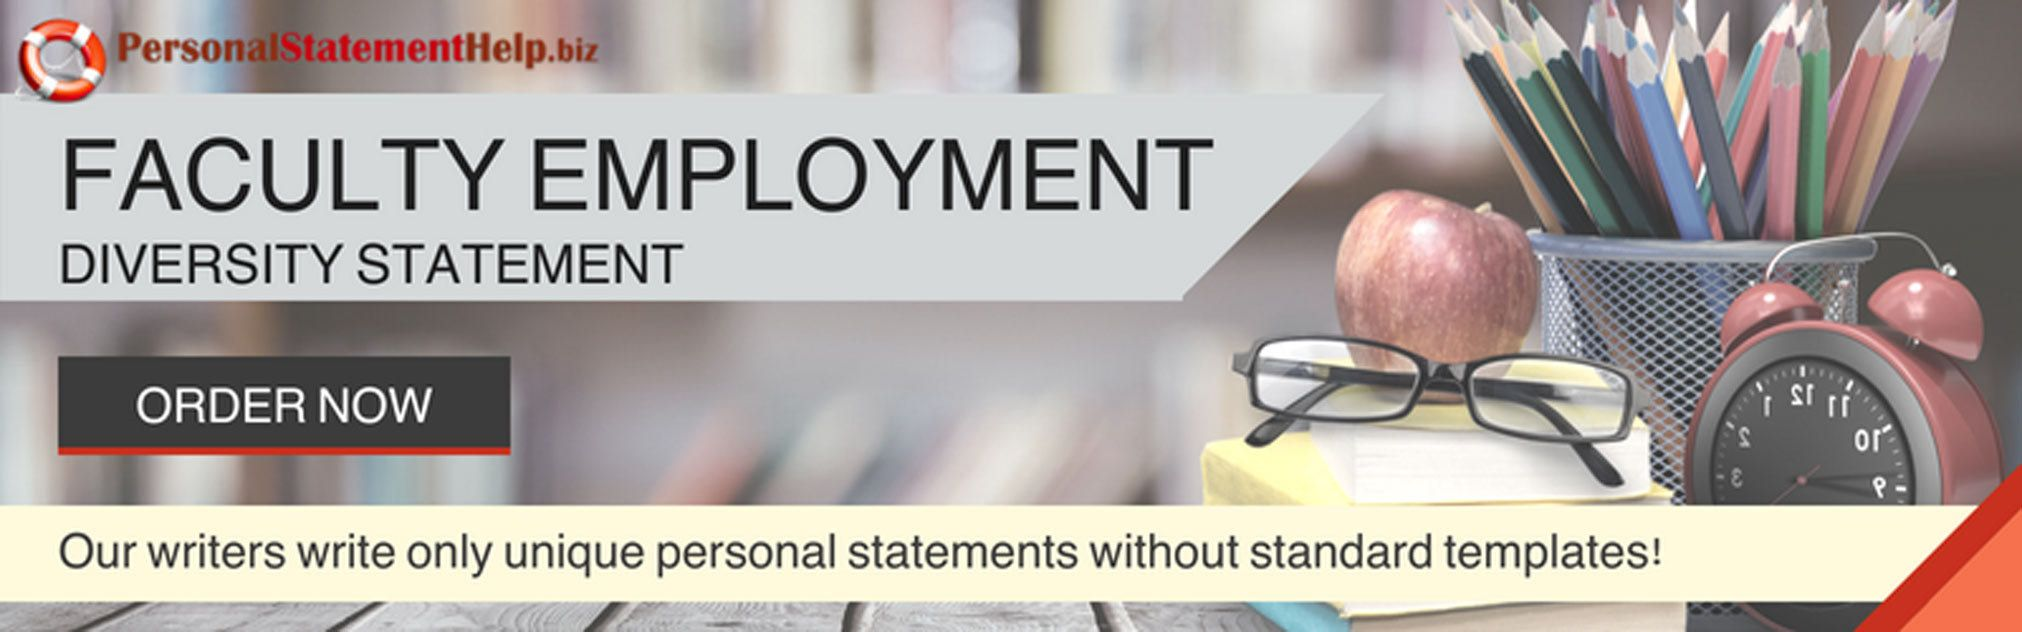 Sample diversity statement for employment help that can